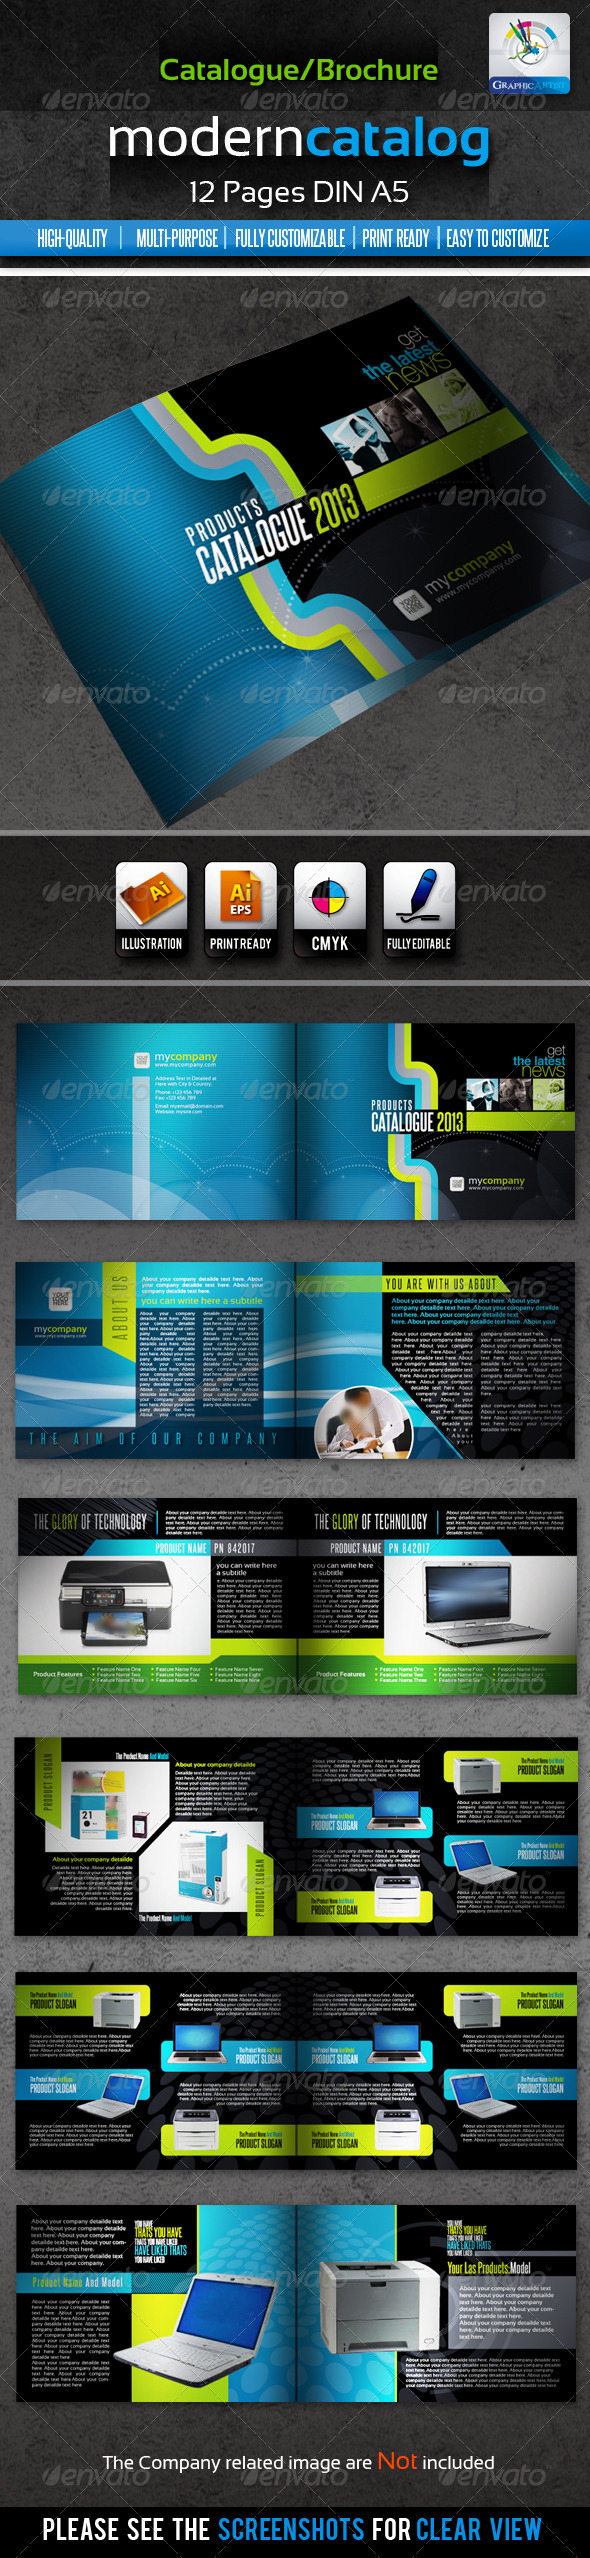 Corporate Modern Product Catalogue/Brochure 12page - Catalogs Brochures